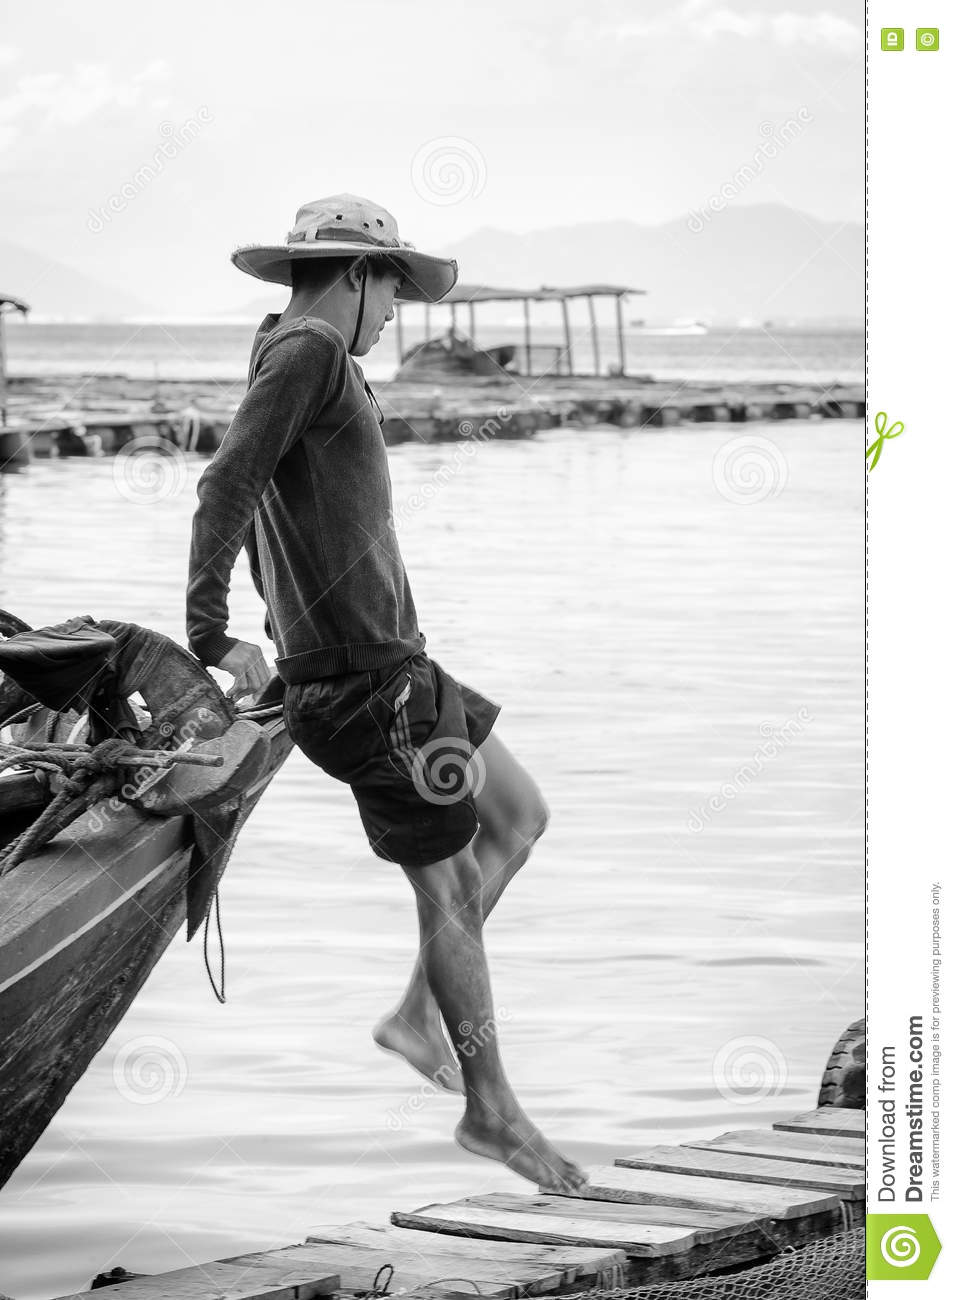 Real People In Vietnam, In Black And White Editorial Stock